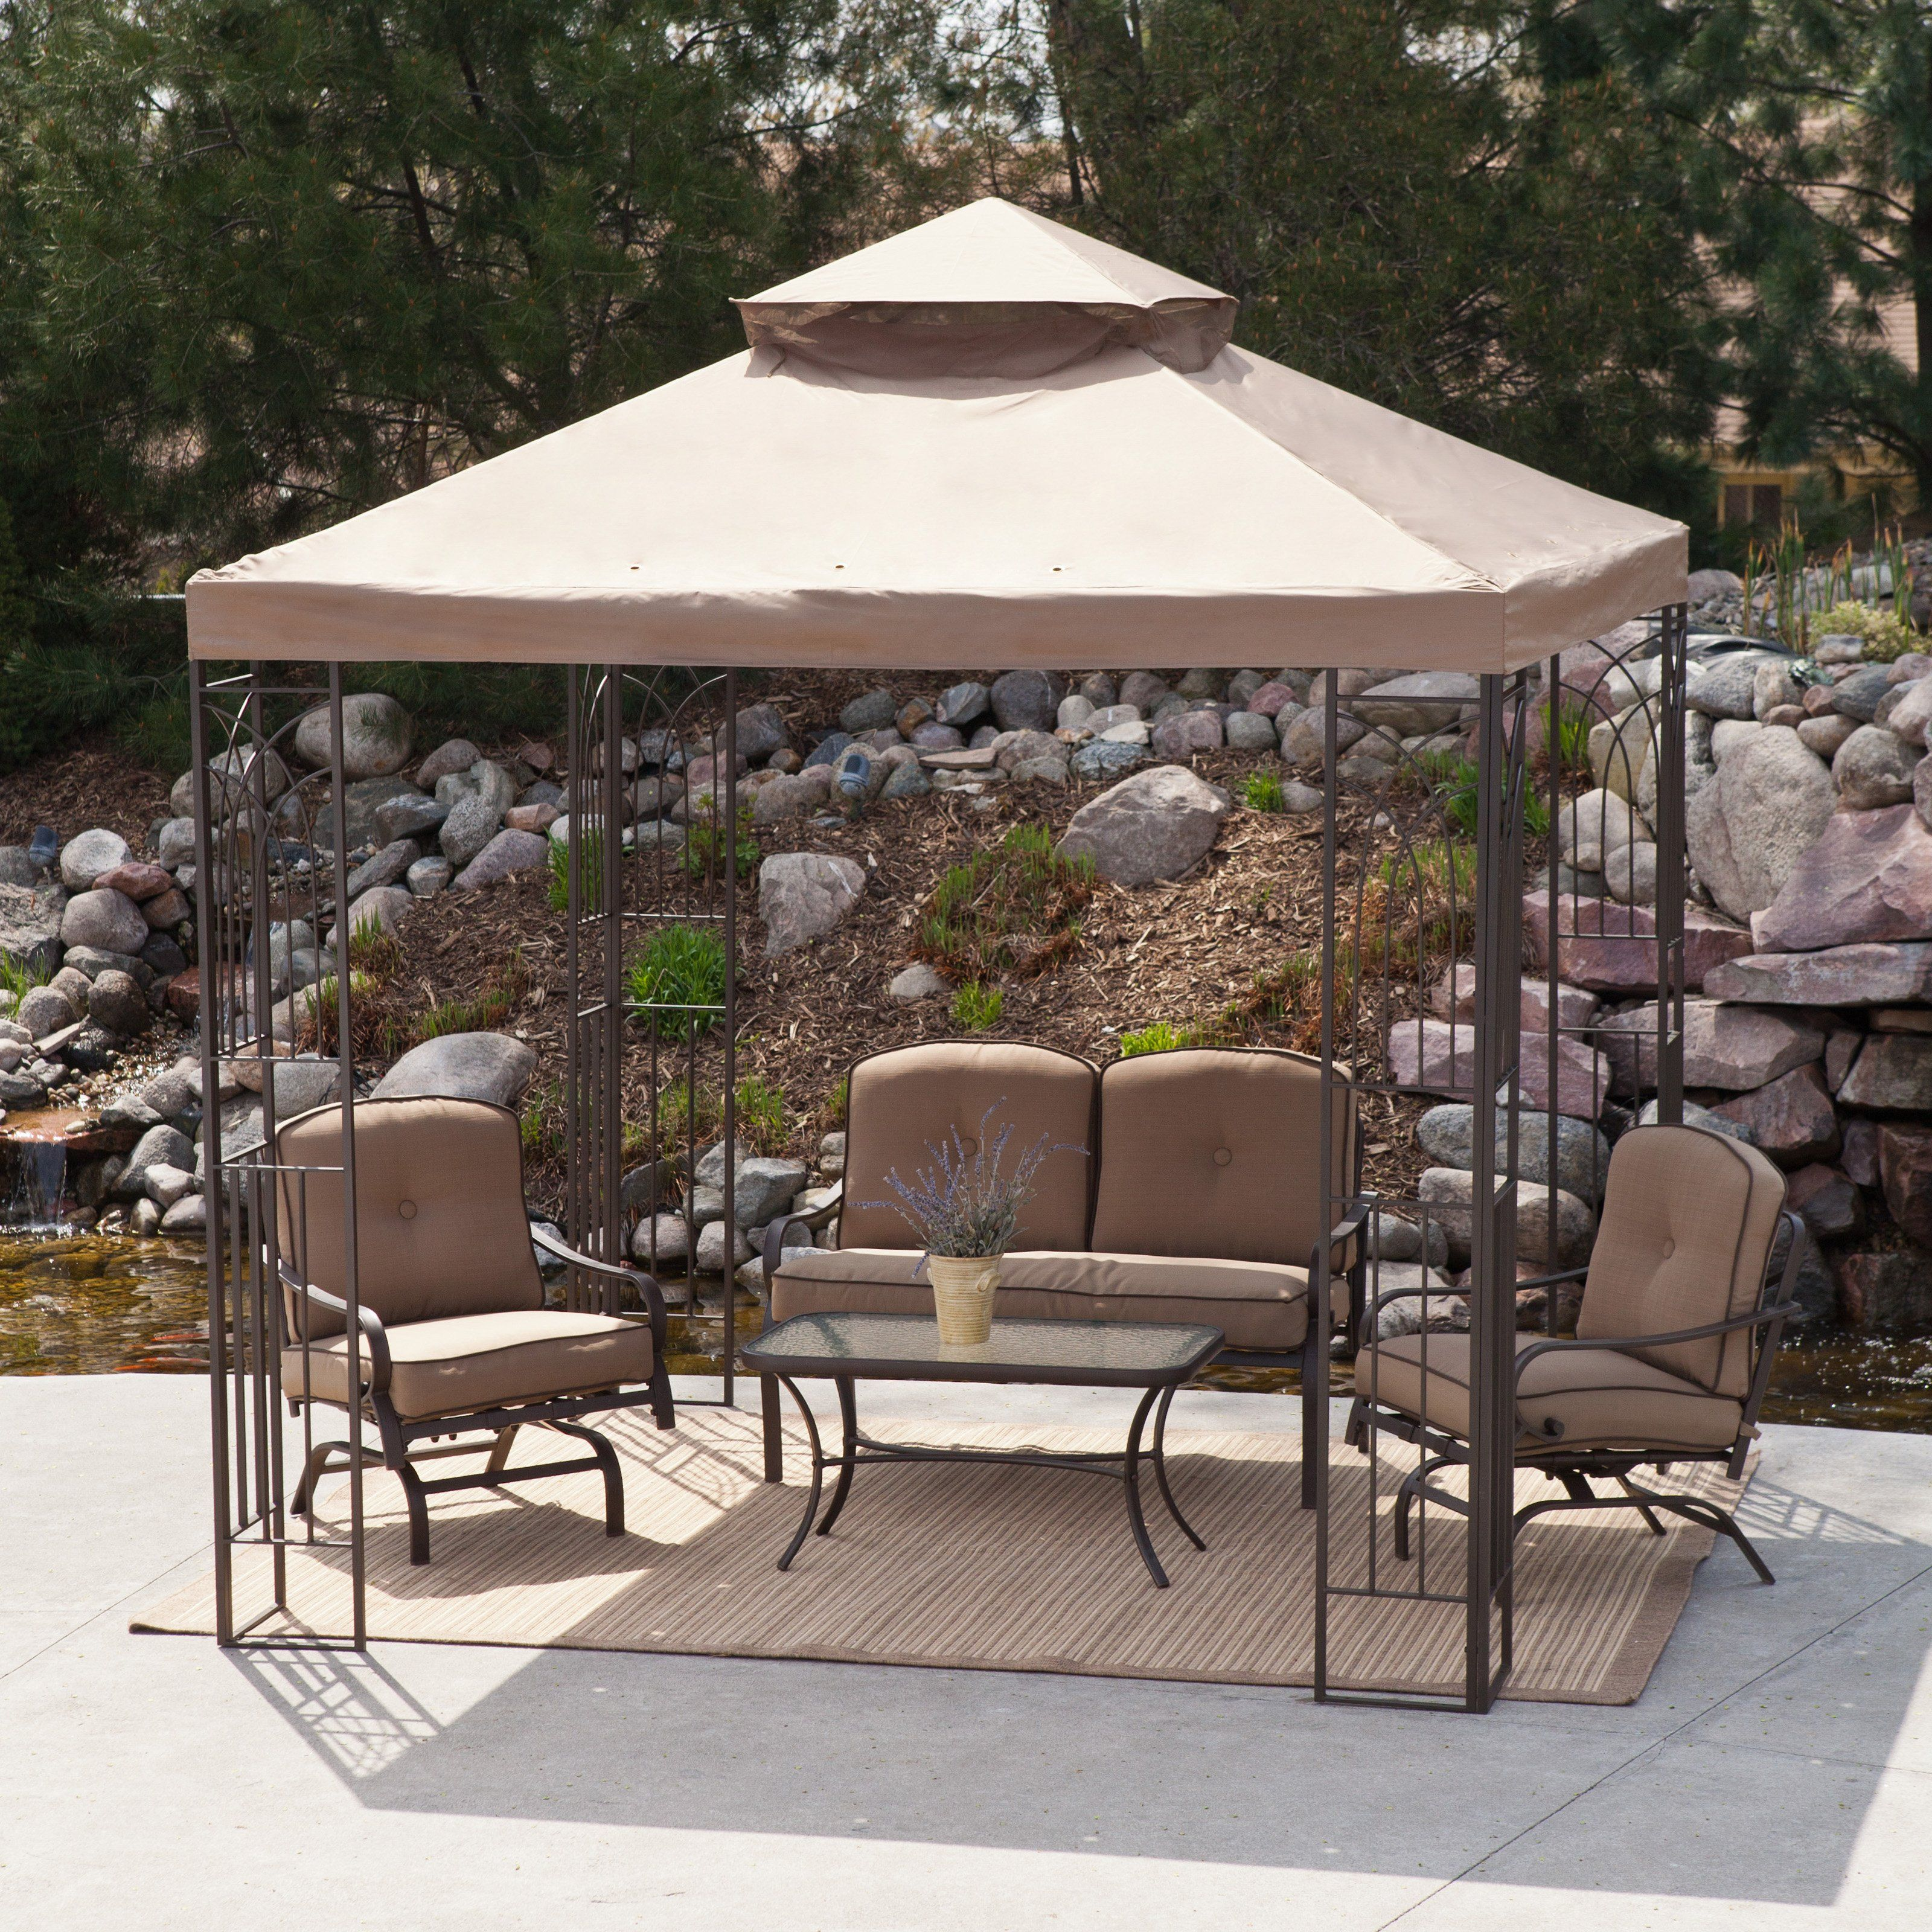 Coral Coast Prairie Grass 8 X 8 Ft. Gazebo Canopy   The Coral Coast Prairie  Grass 8 X 8 Ft. Gazebo Canopy Is A Beautiful Addition To Any Backyard Area,  ...